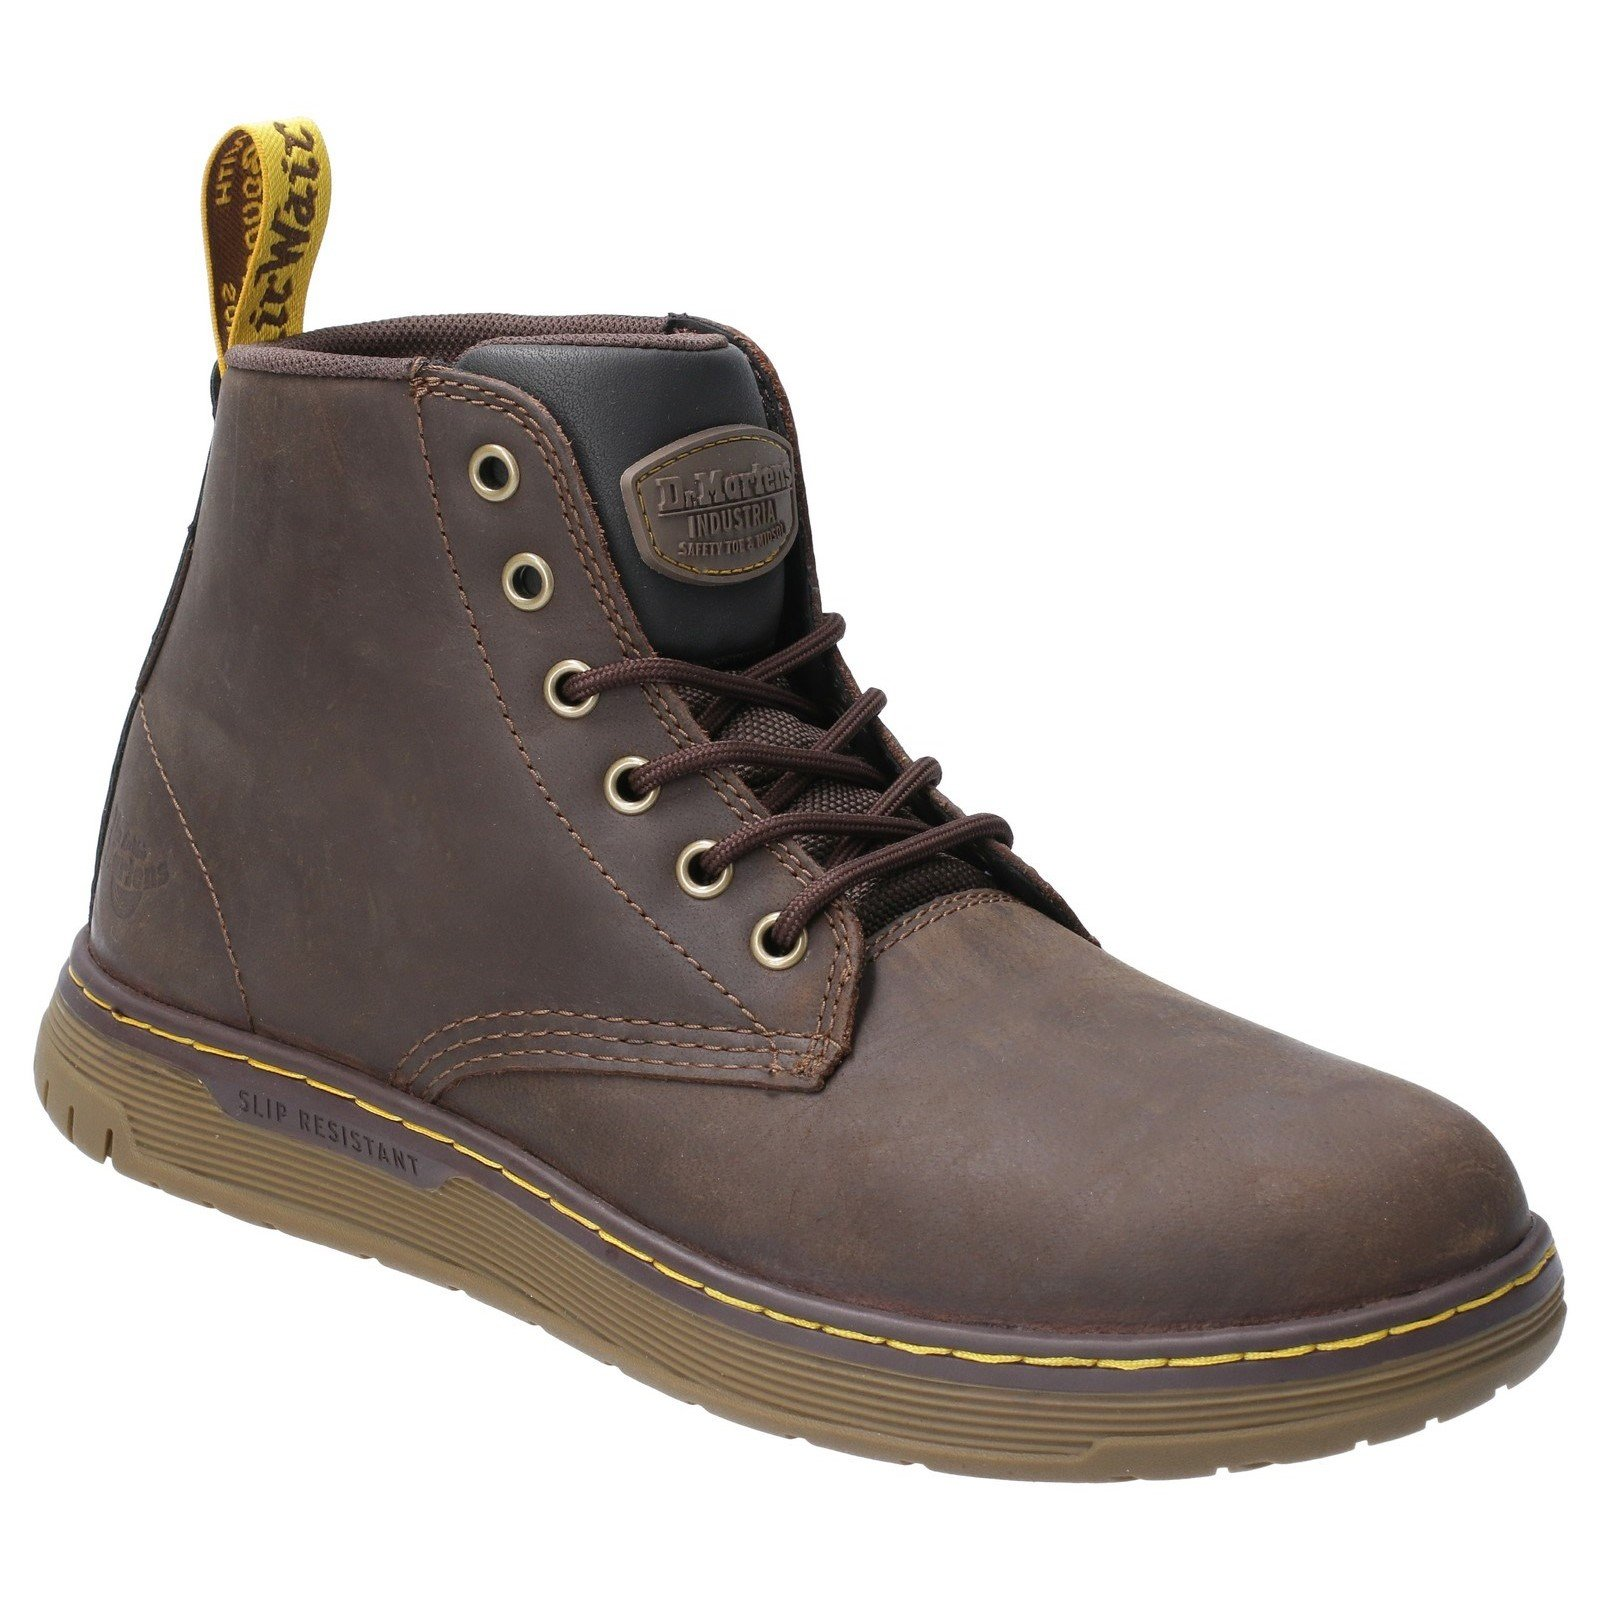 Dr Martens Unisex Ledger Lace Up Safety Boot Brown 29501 - Brown 11